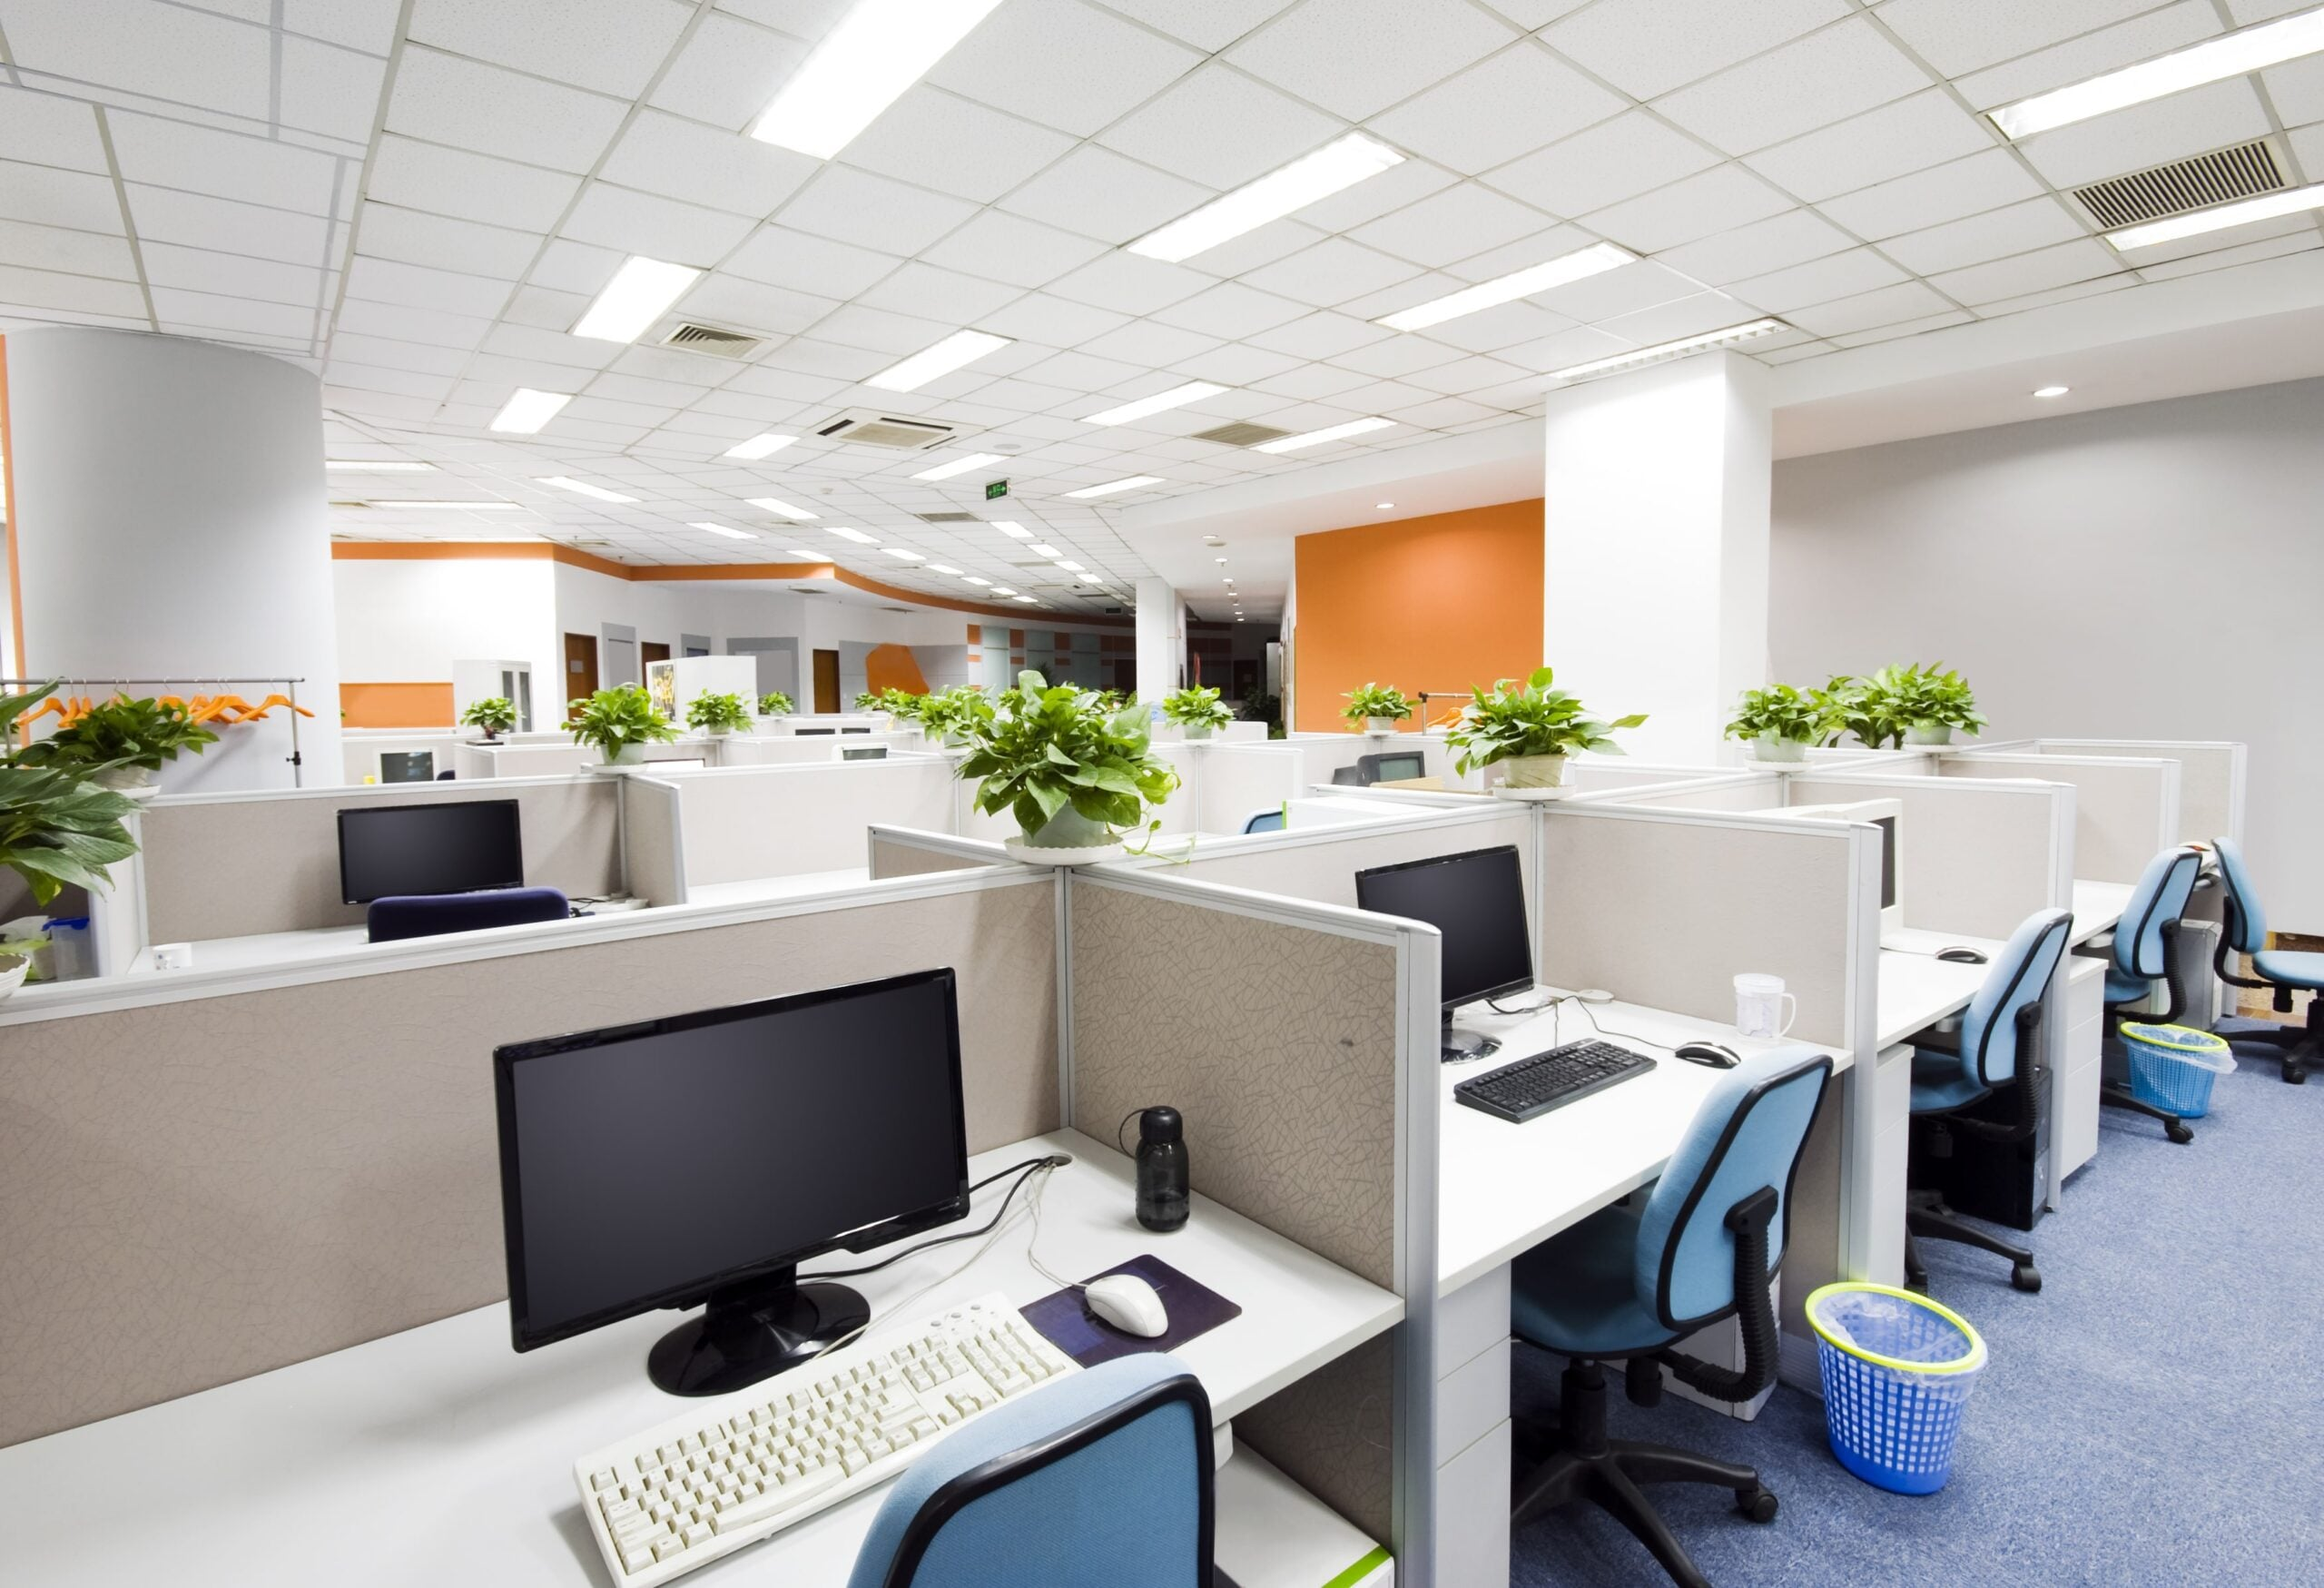 Why choose an area of 50m2 to arrange your office